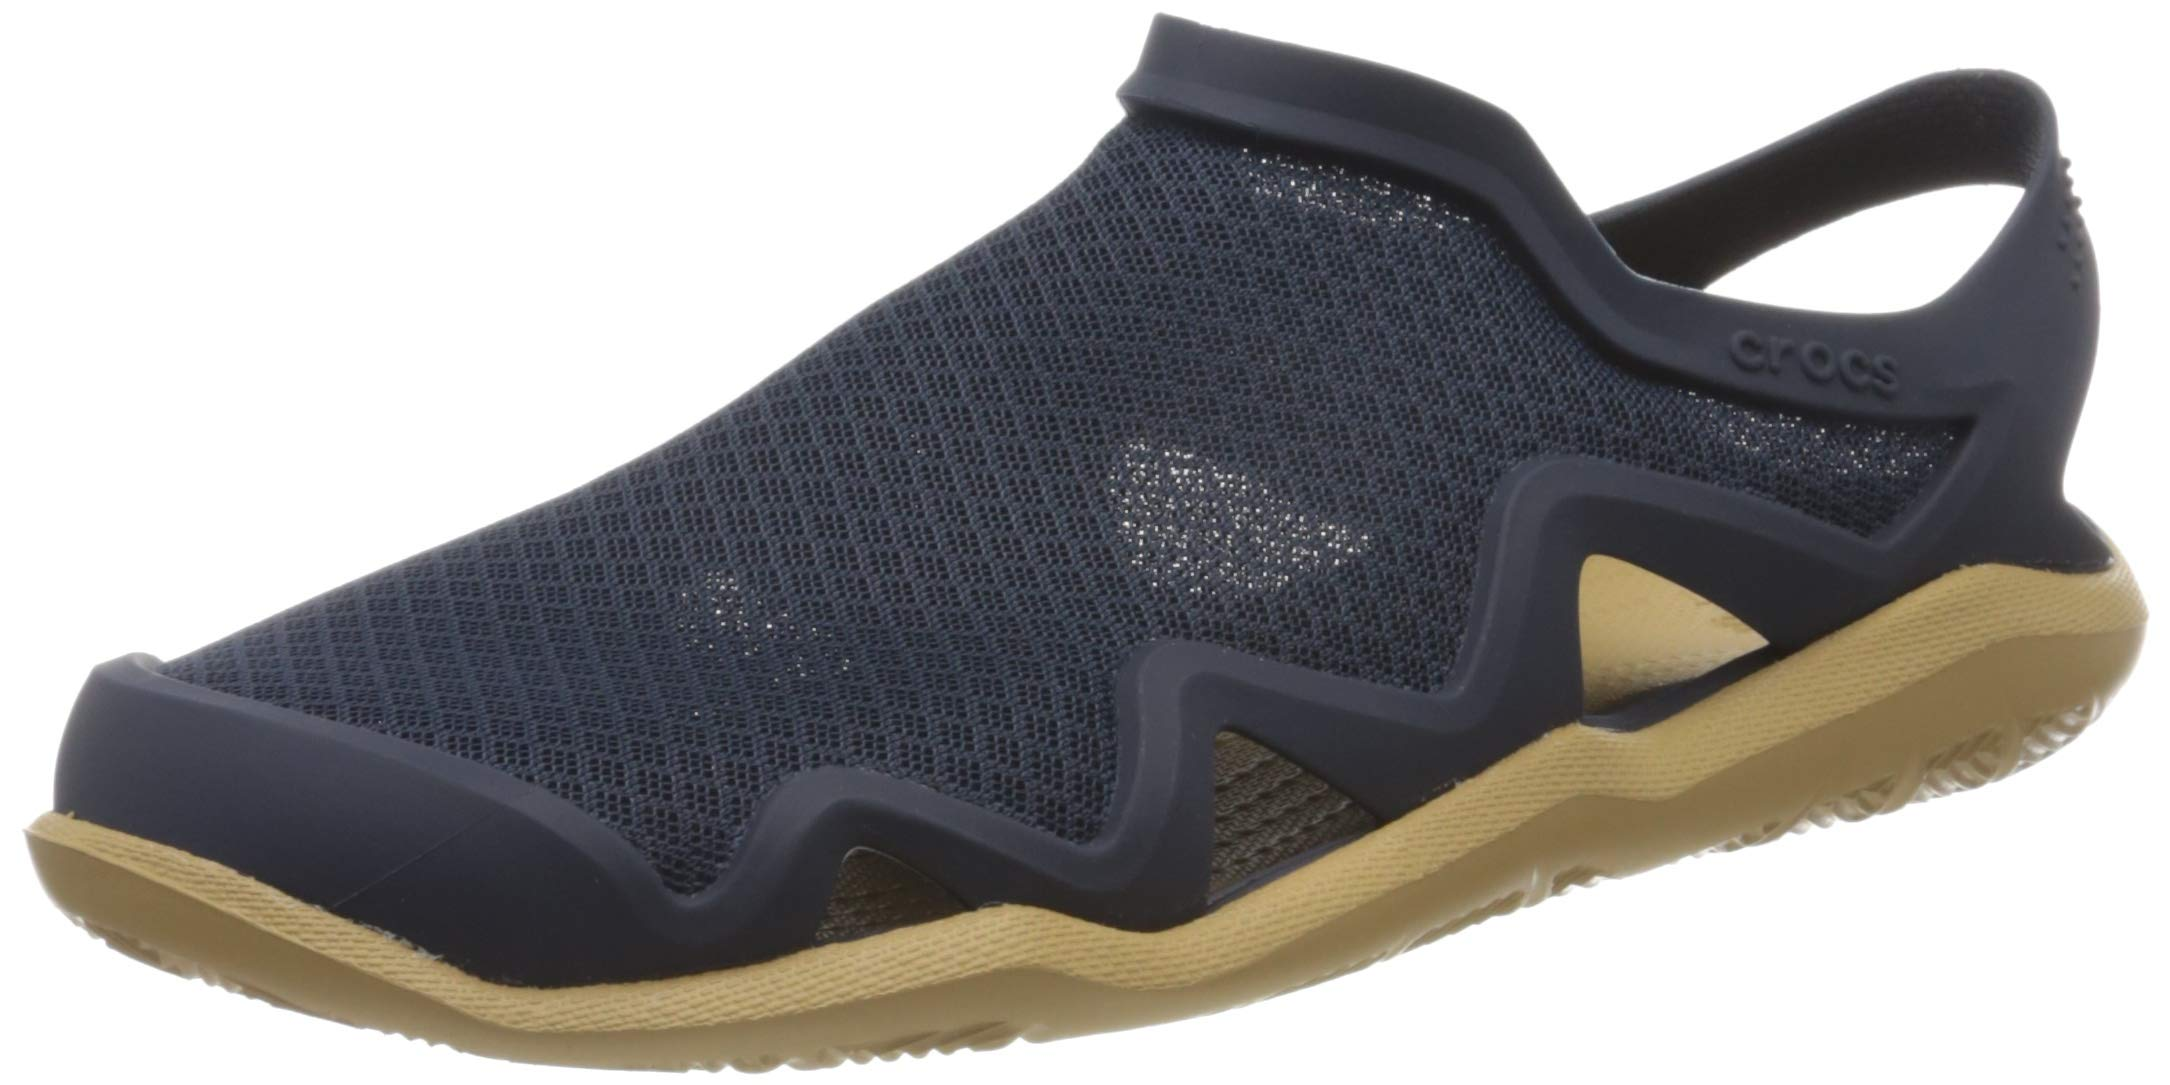 Crocs Men's Swiftwater Mesh Wave Closed Toe Sandals